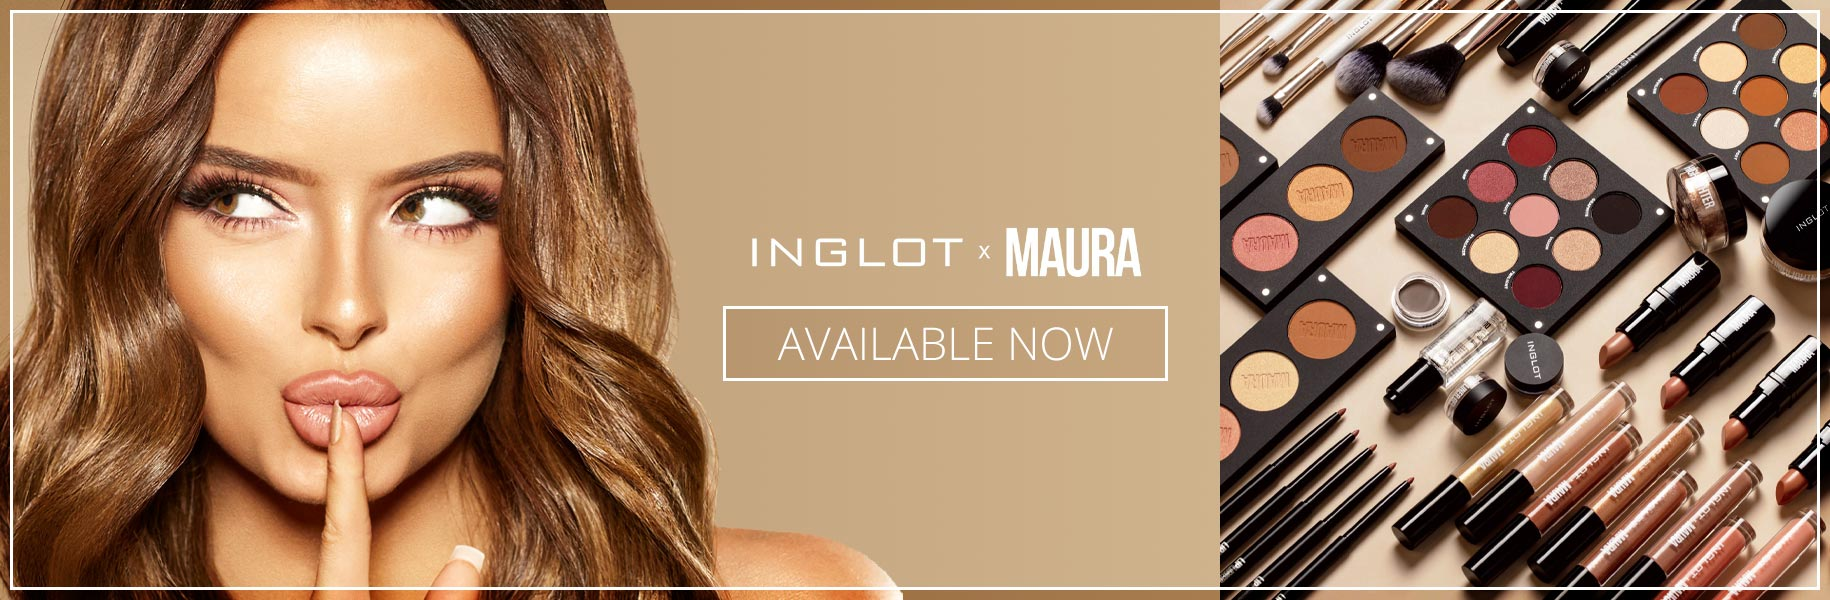 Inglot x Maura - Available now at Rochford's Pharmacy